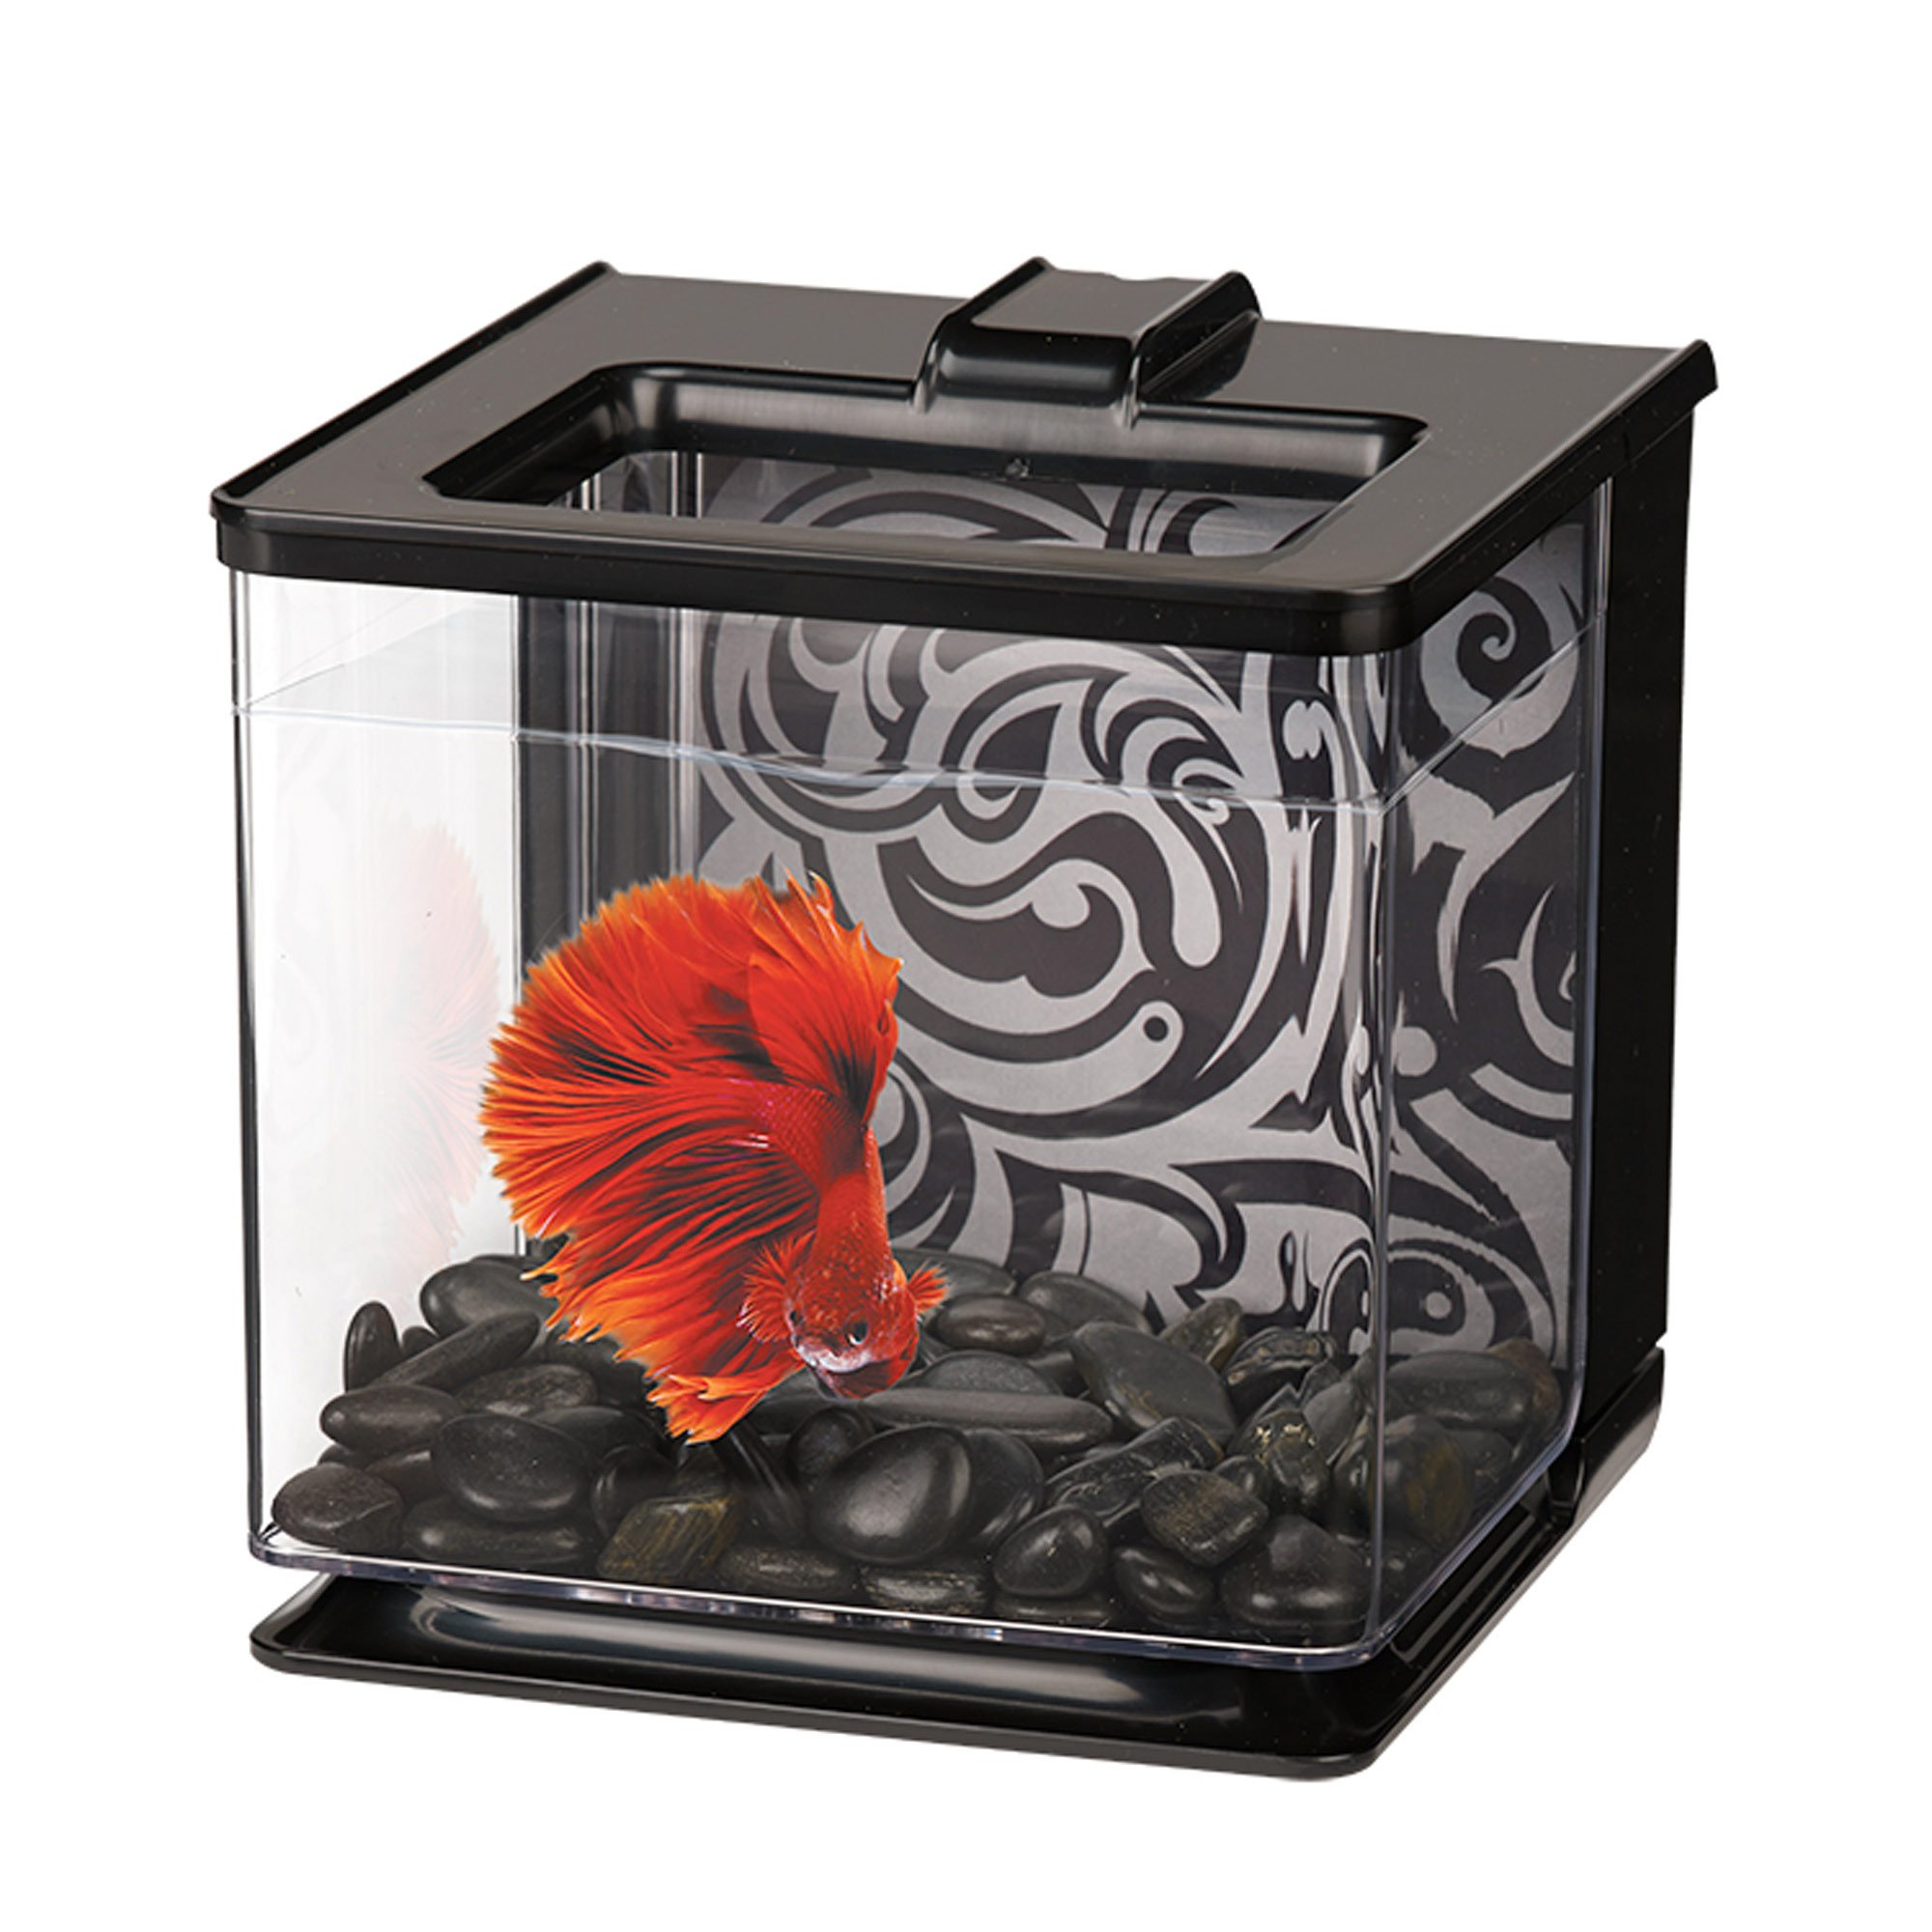 Marina betta ez care black aquarium kit petco for Betta fish tanks petco